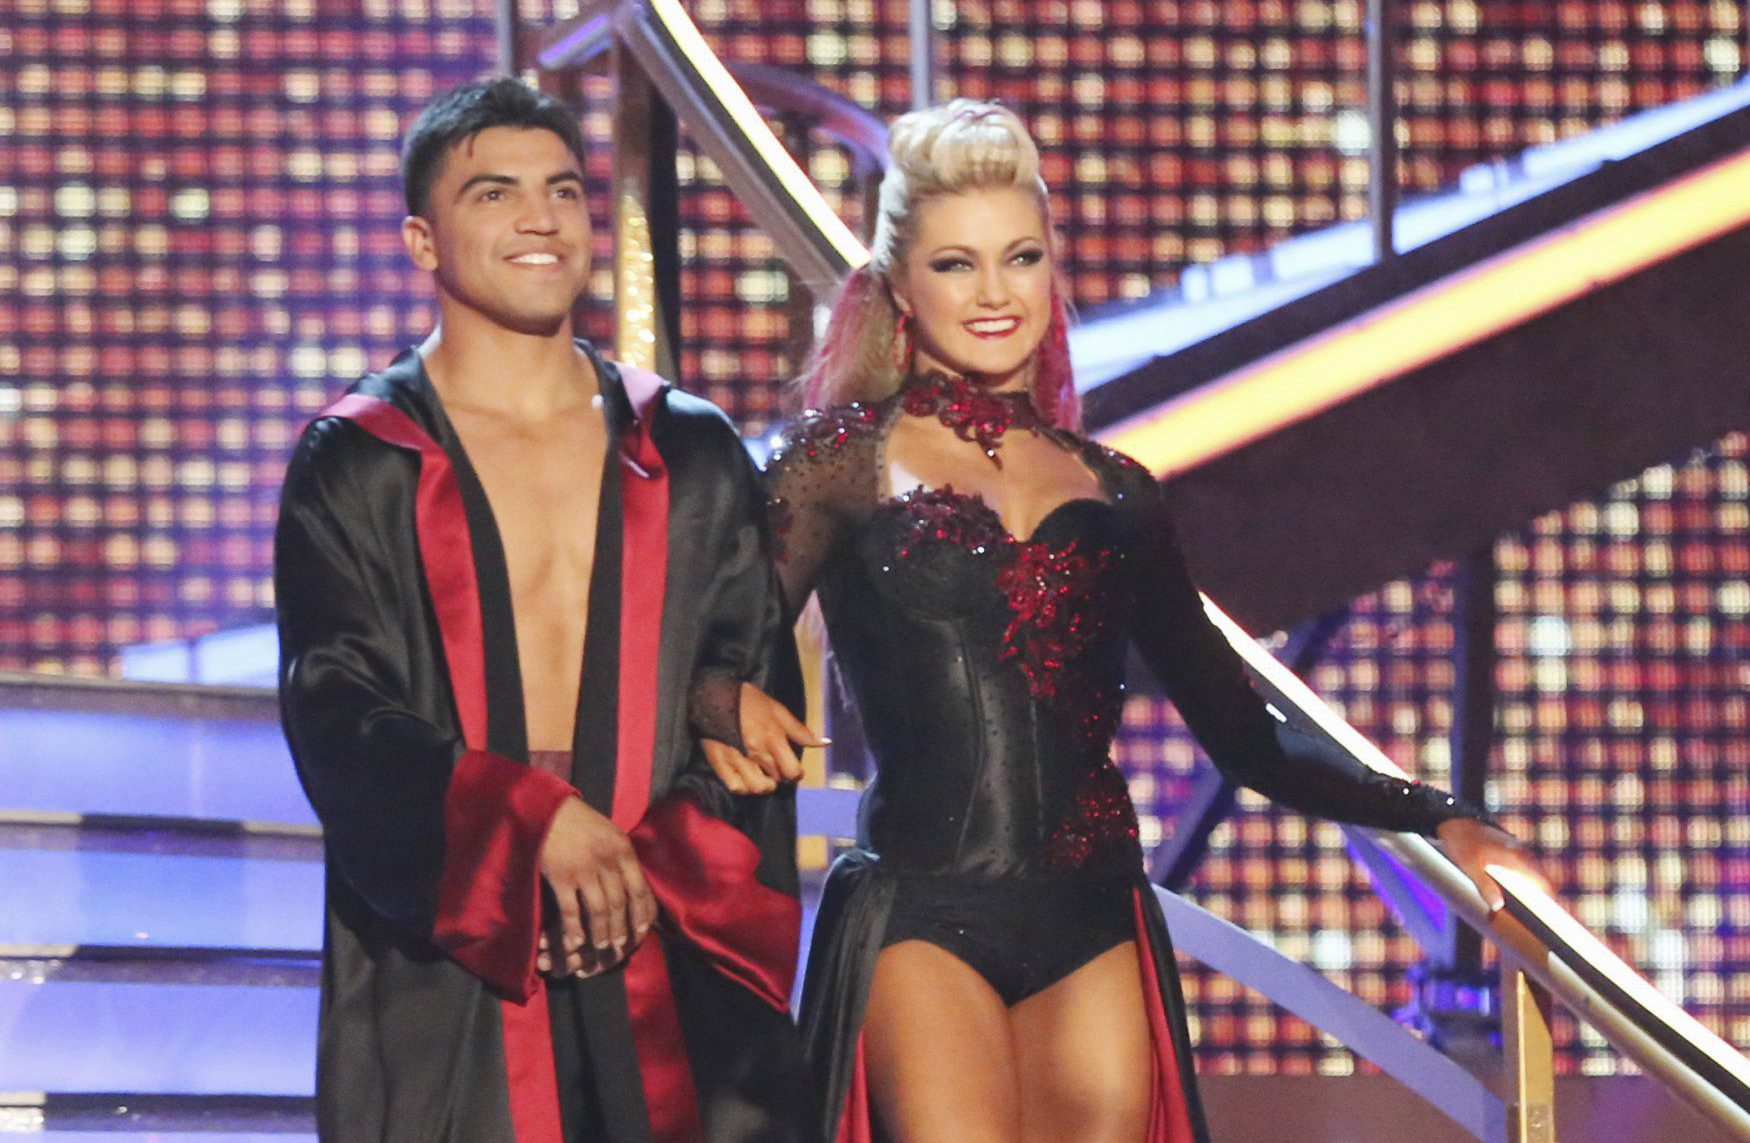 Boxer and Dancing With The Stars contestant Victor Ortiz charged with rape